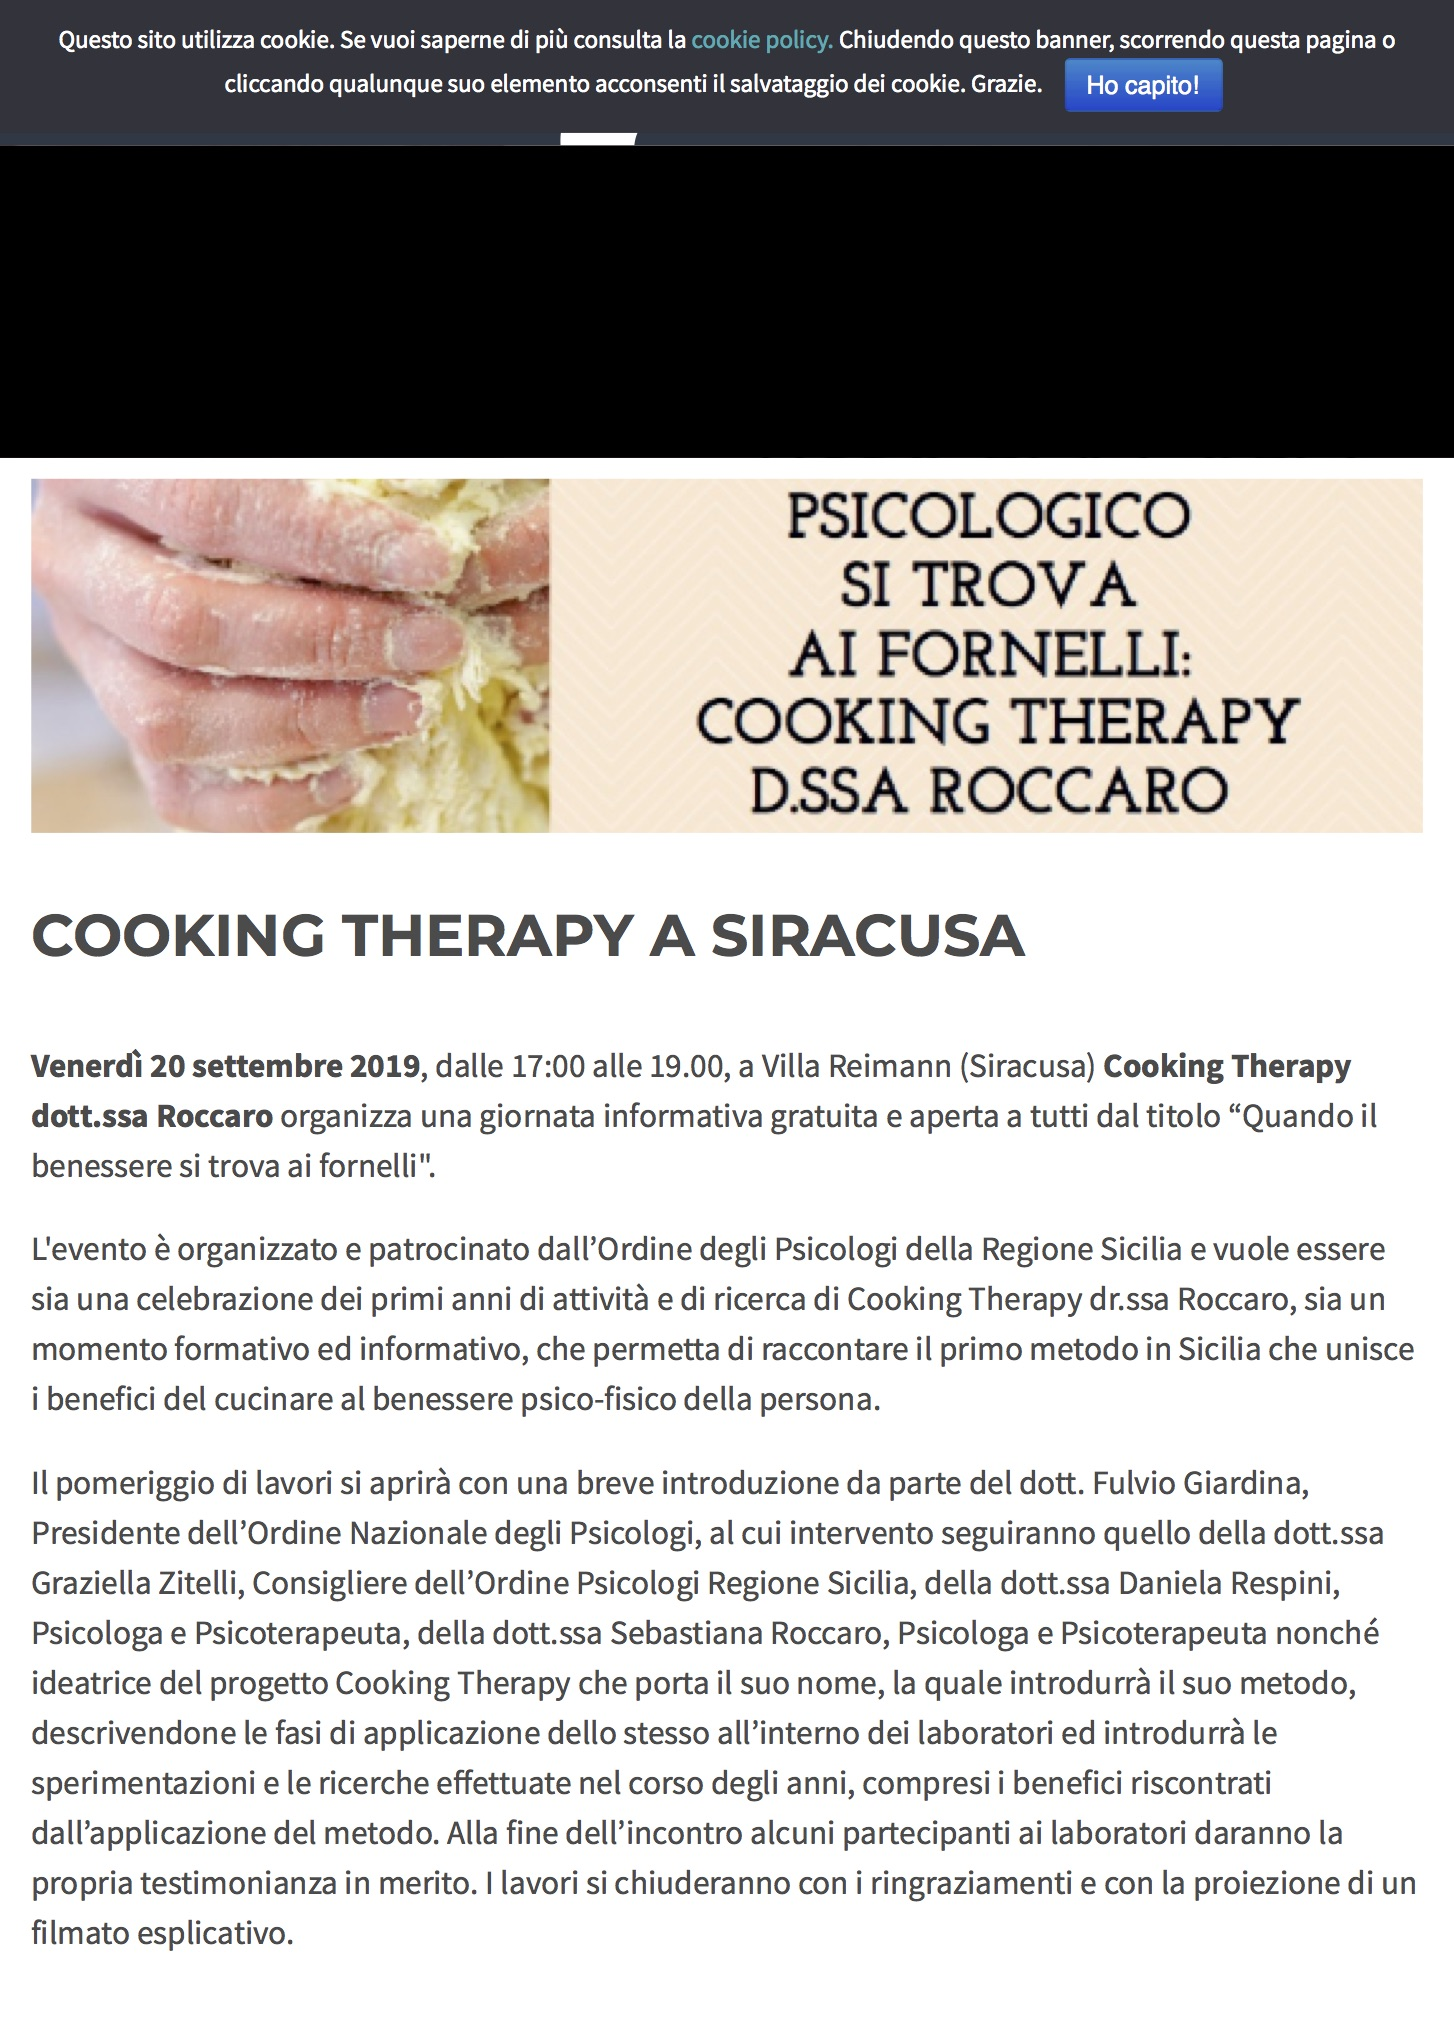 Cooking Therapy a Siracusa - PeriPeri Catania copia.jpg